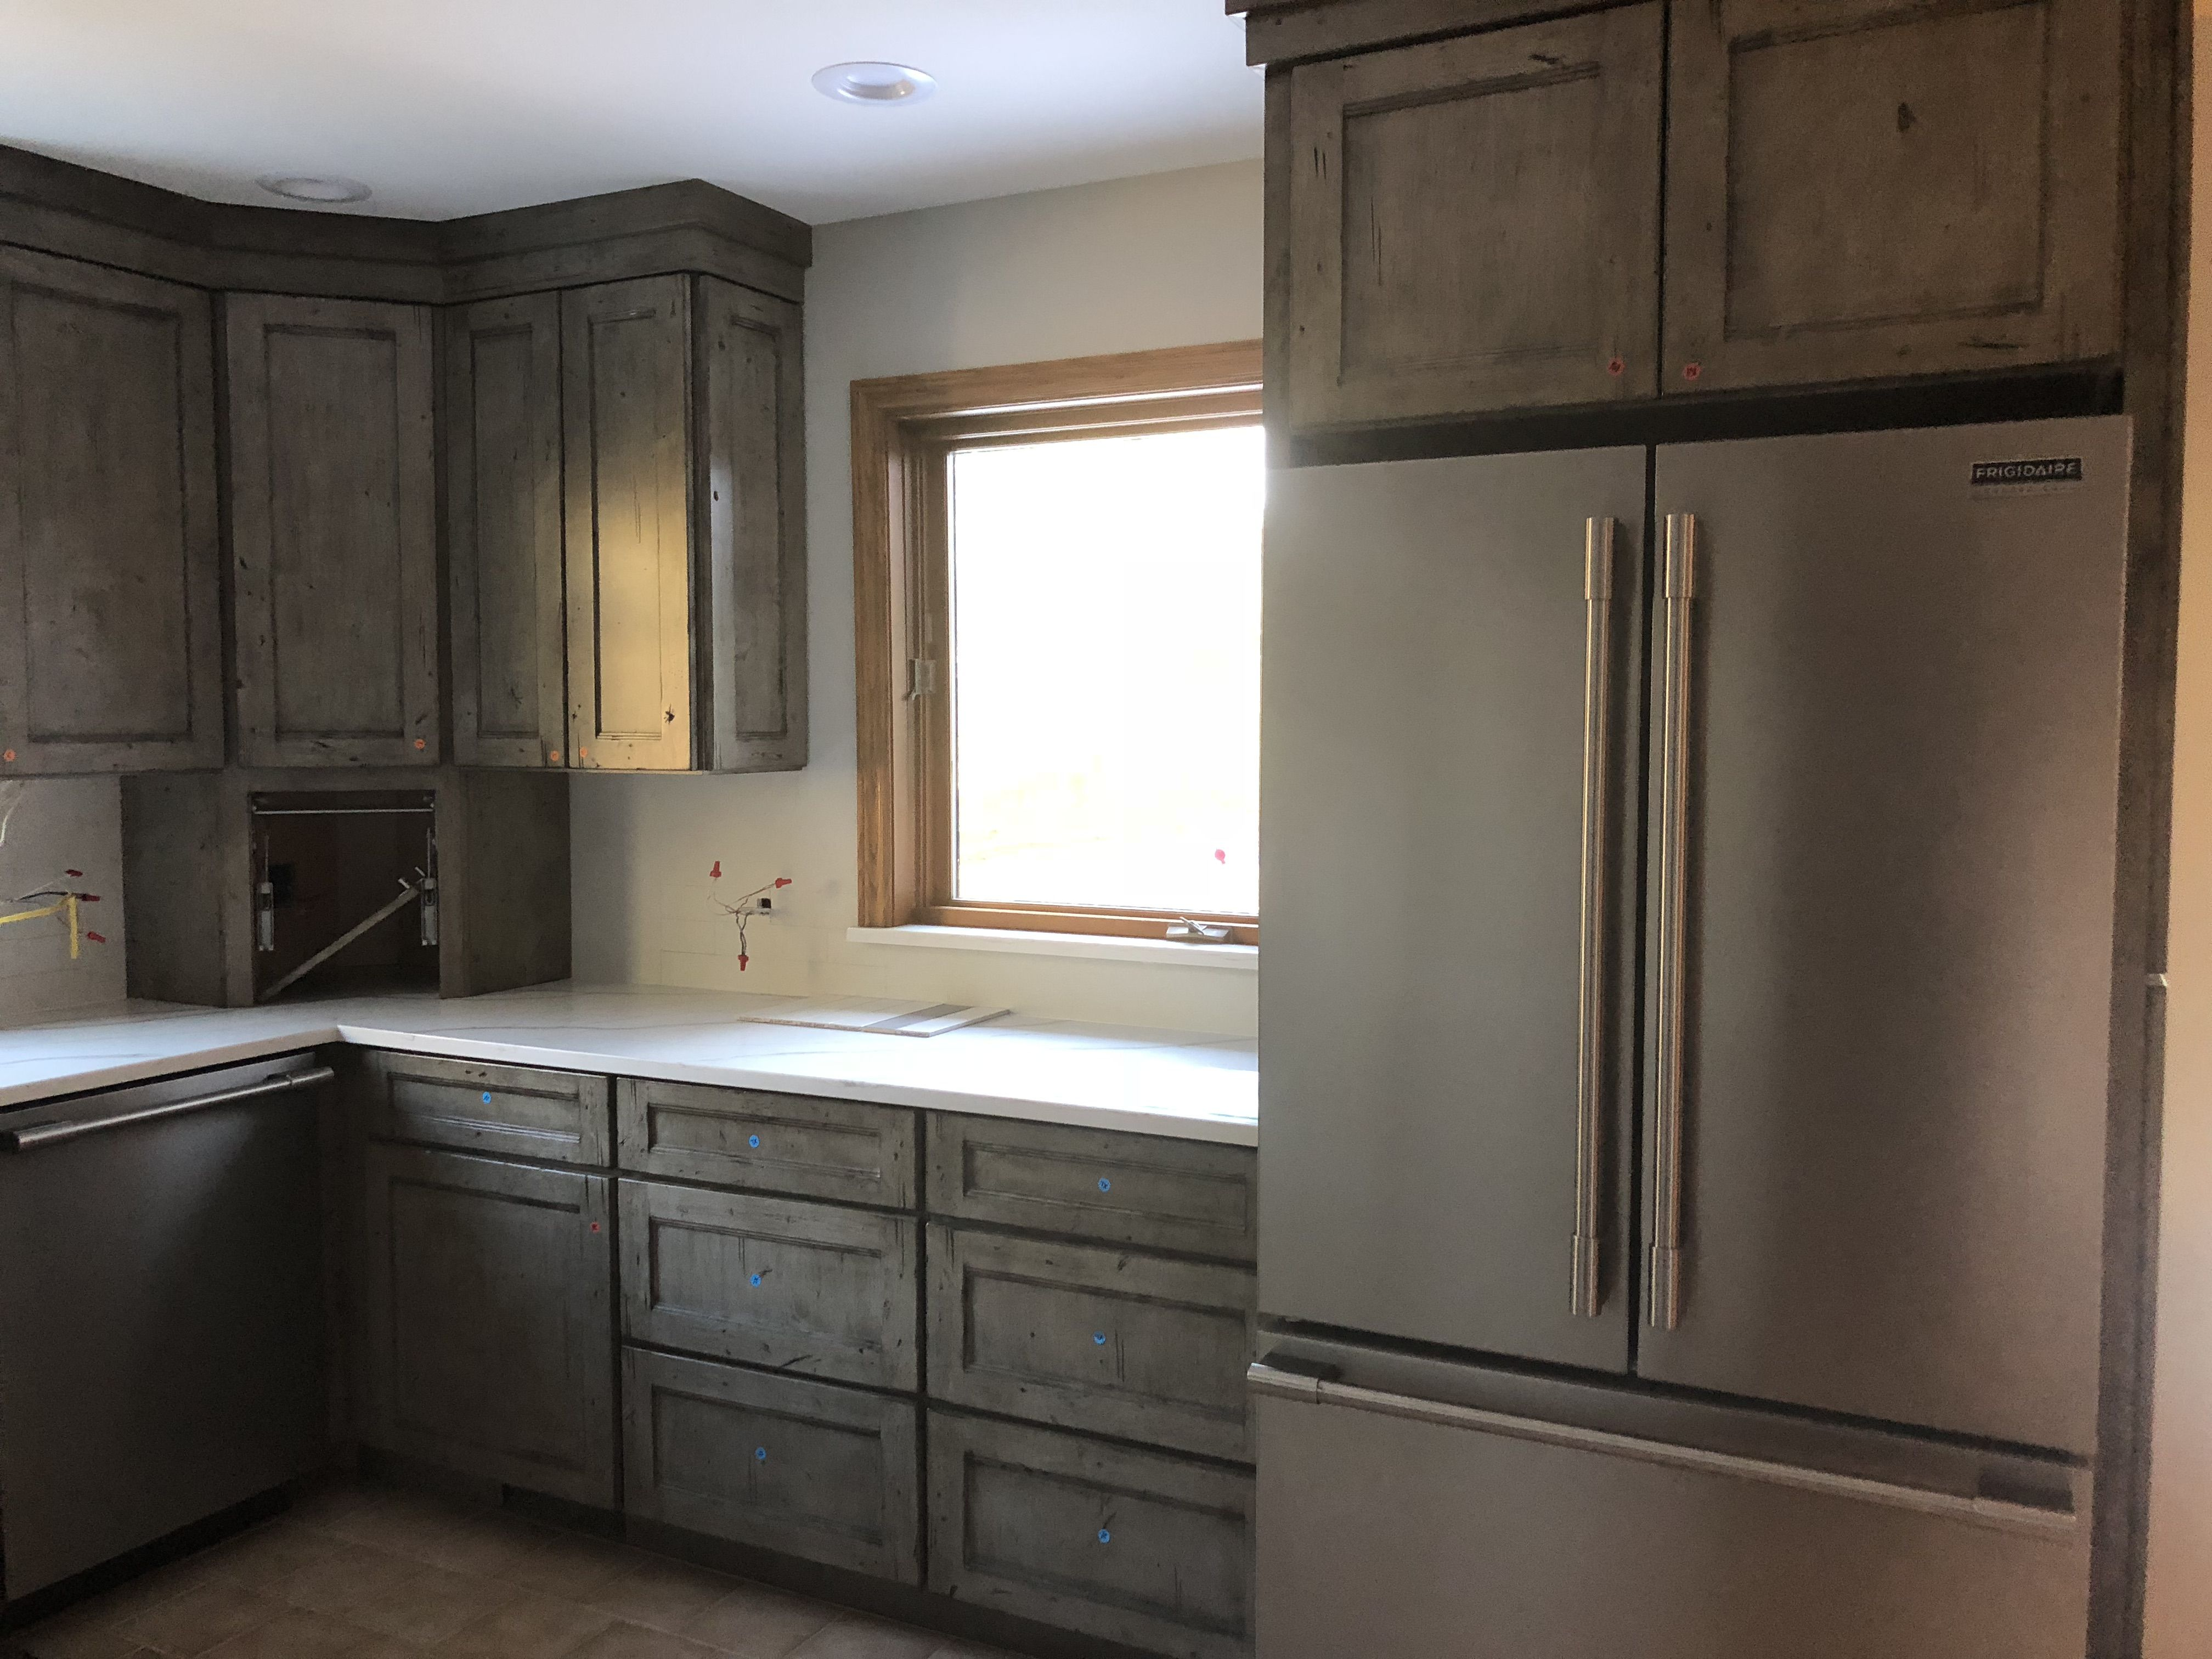 Medallion Kitchen Appaloosa Collection Silver Appaloosa Knotty Alder Antique Distressing Peppered Stockt Diy Kitchen Remodel Kitchen Design Alder Cabinets